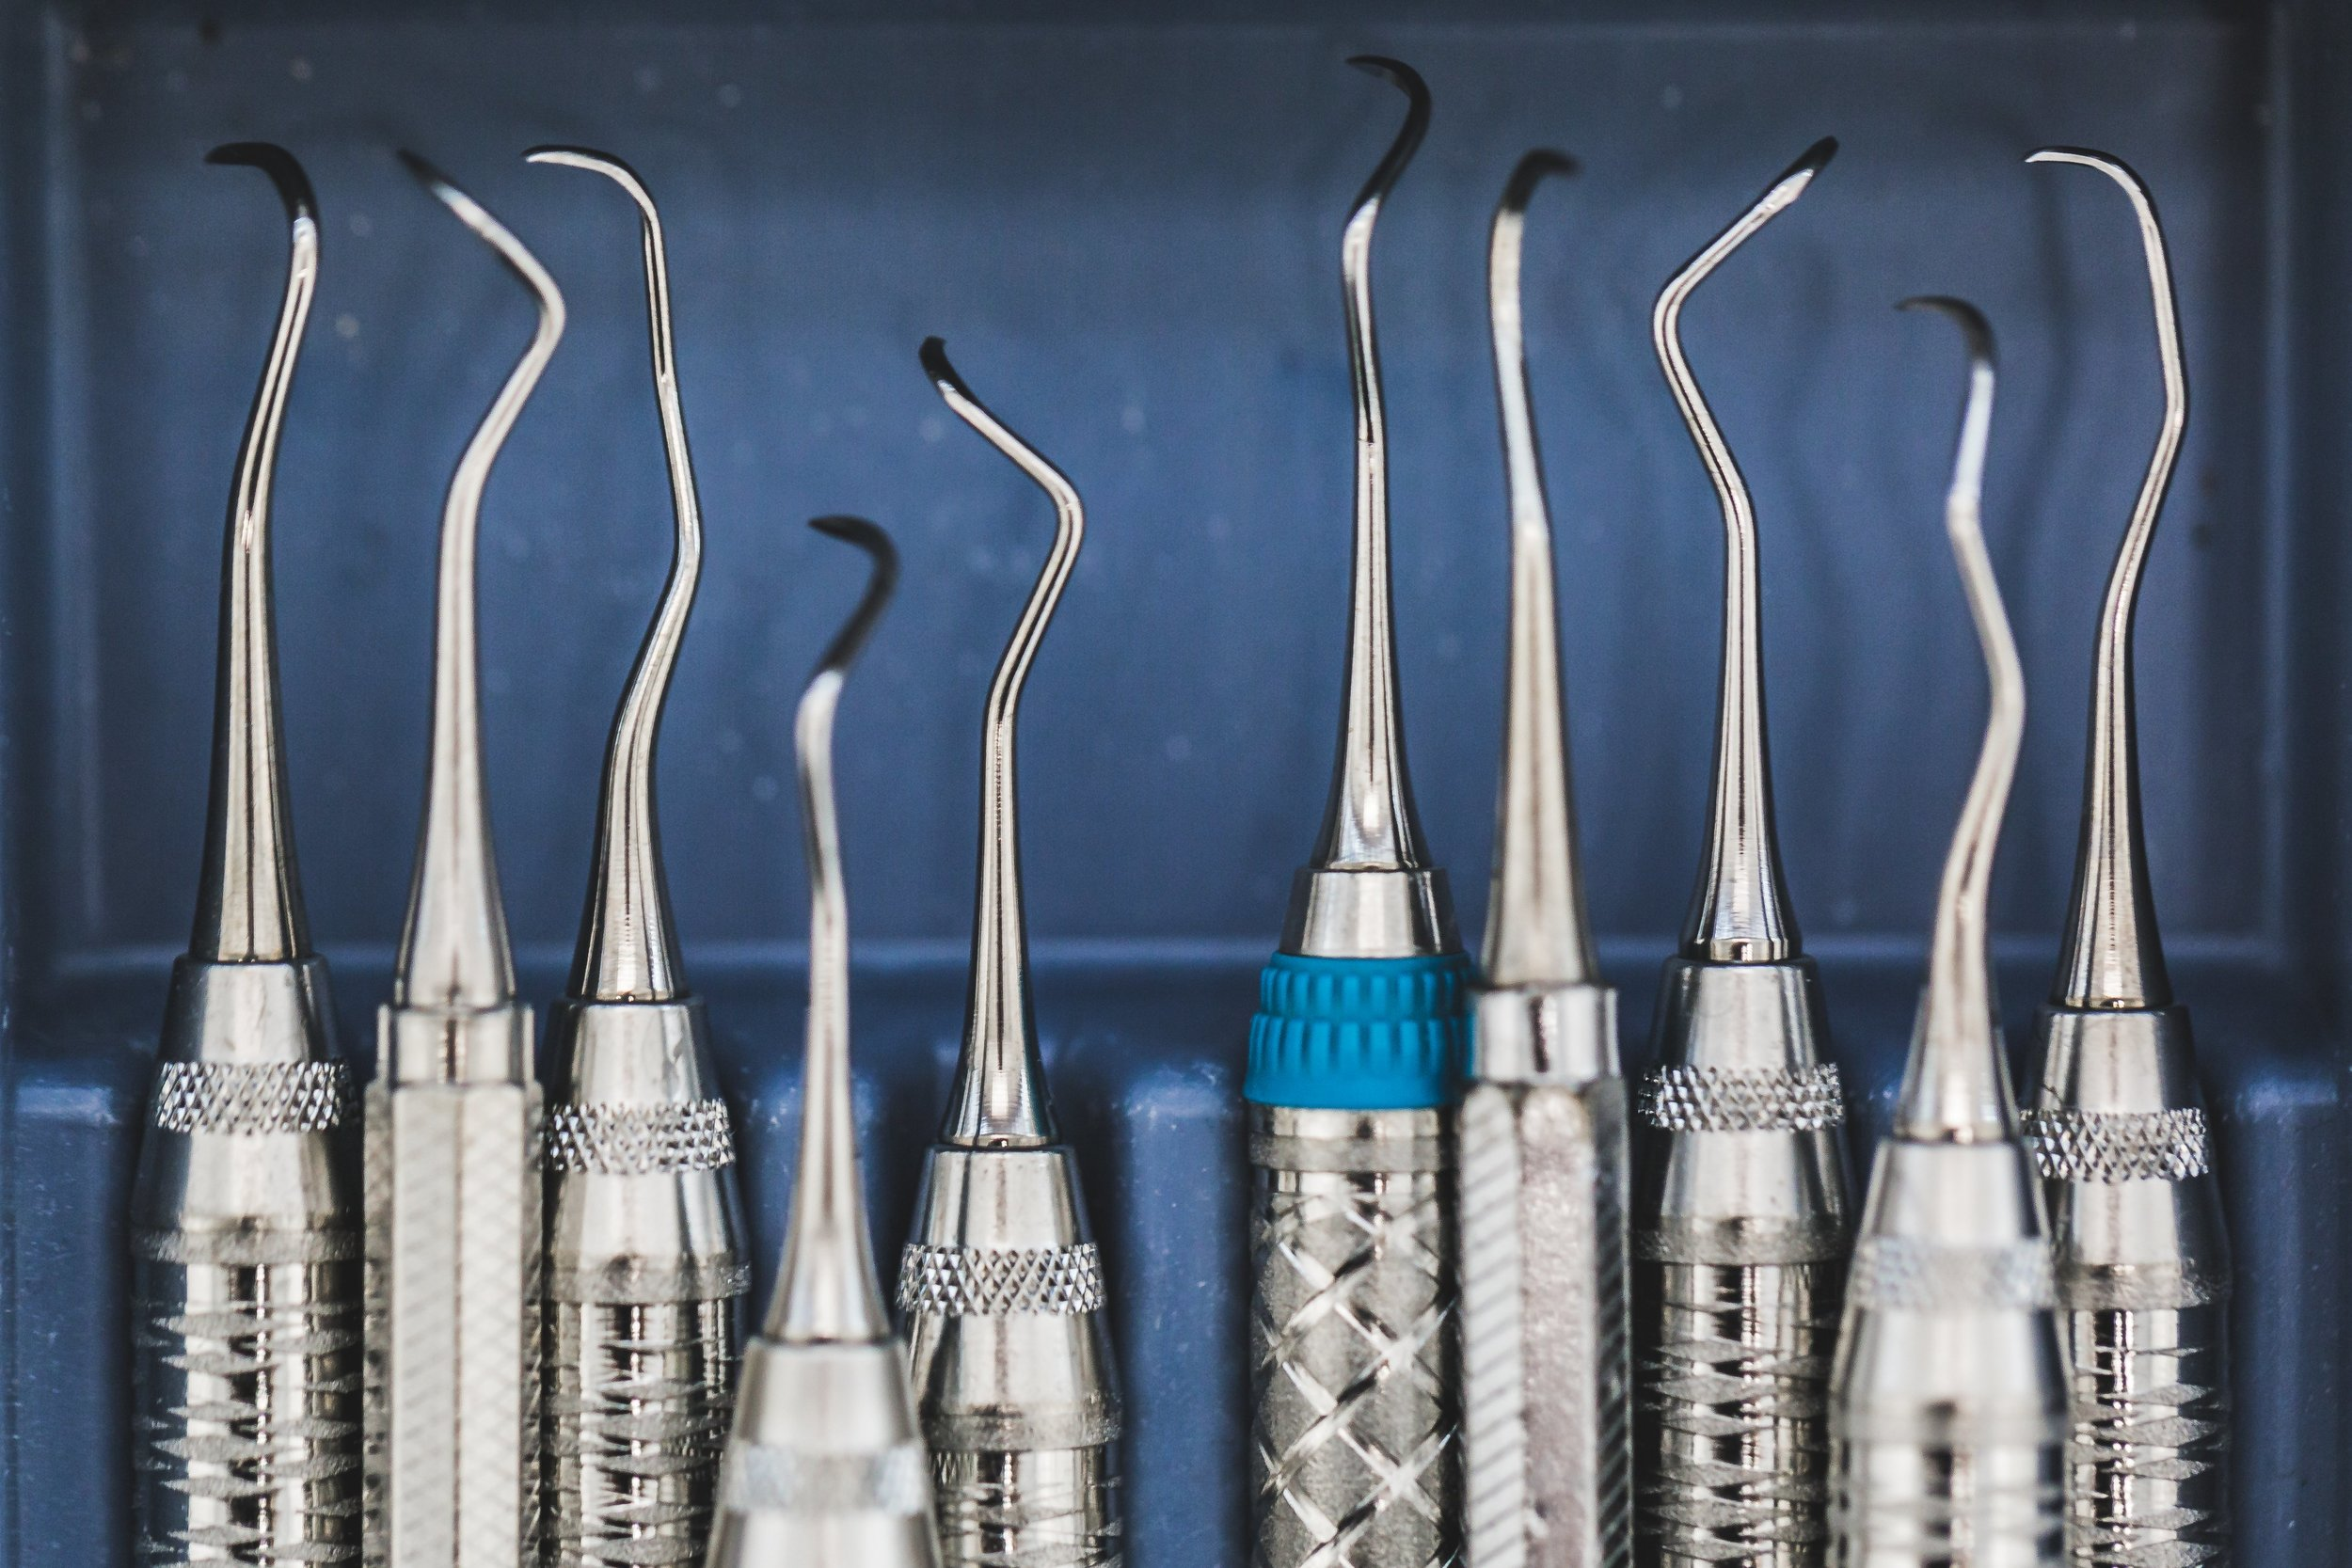 dental-picks_4460x4460.jpg